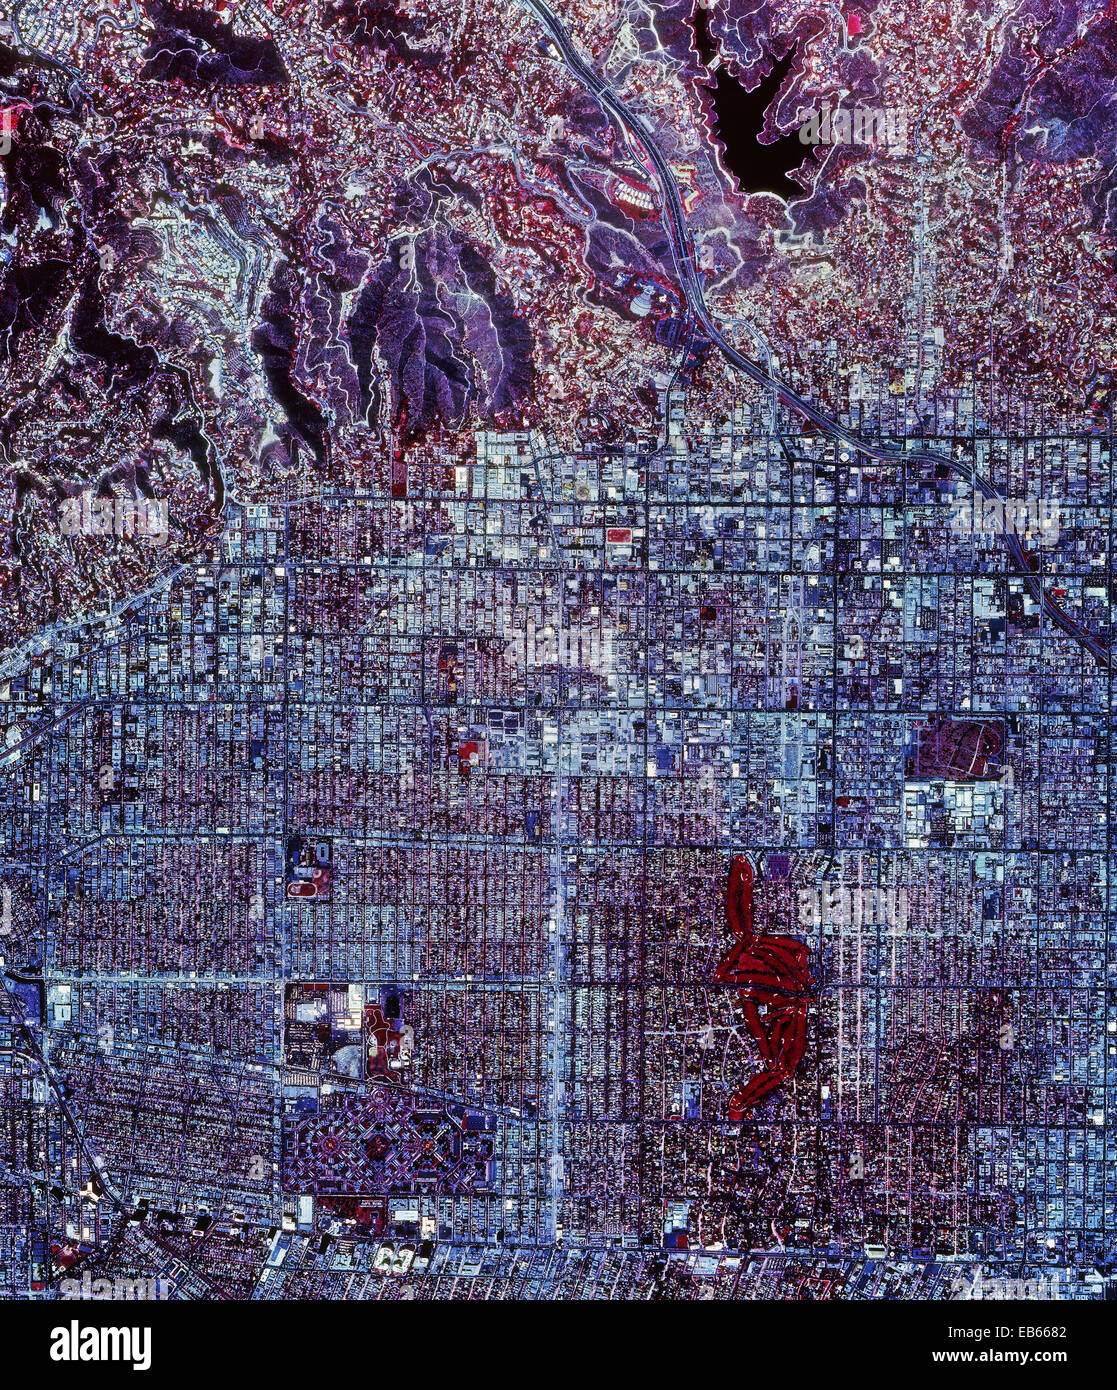 historical infrared aerial photograph of Hollywood, California, 1989 - Stock Image